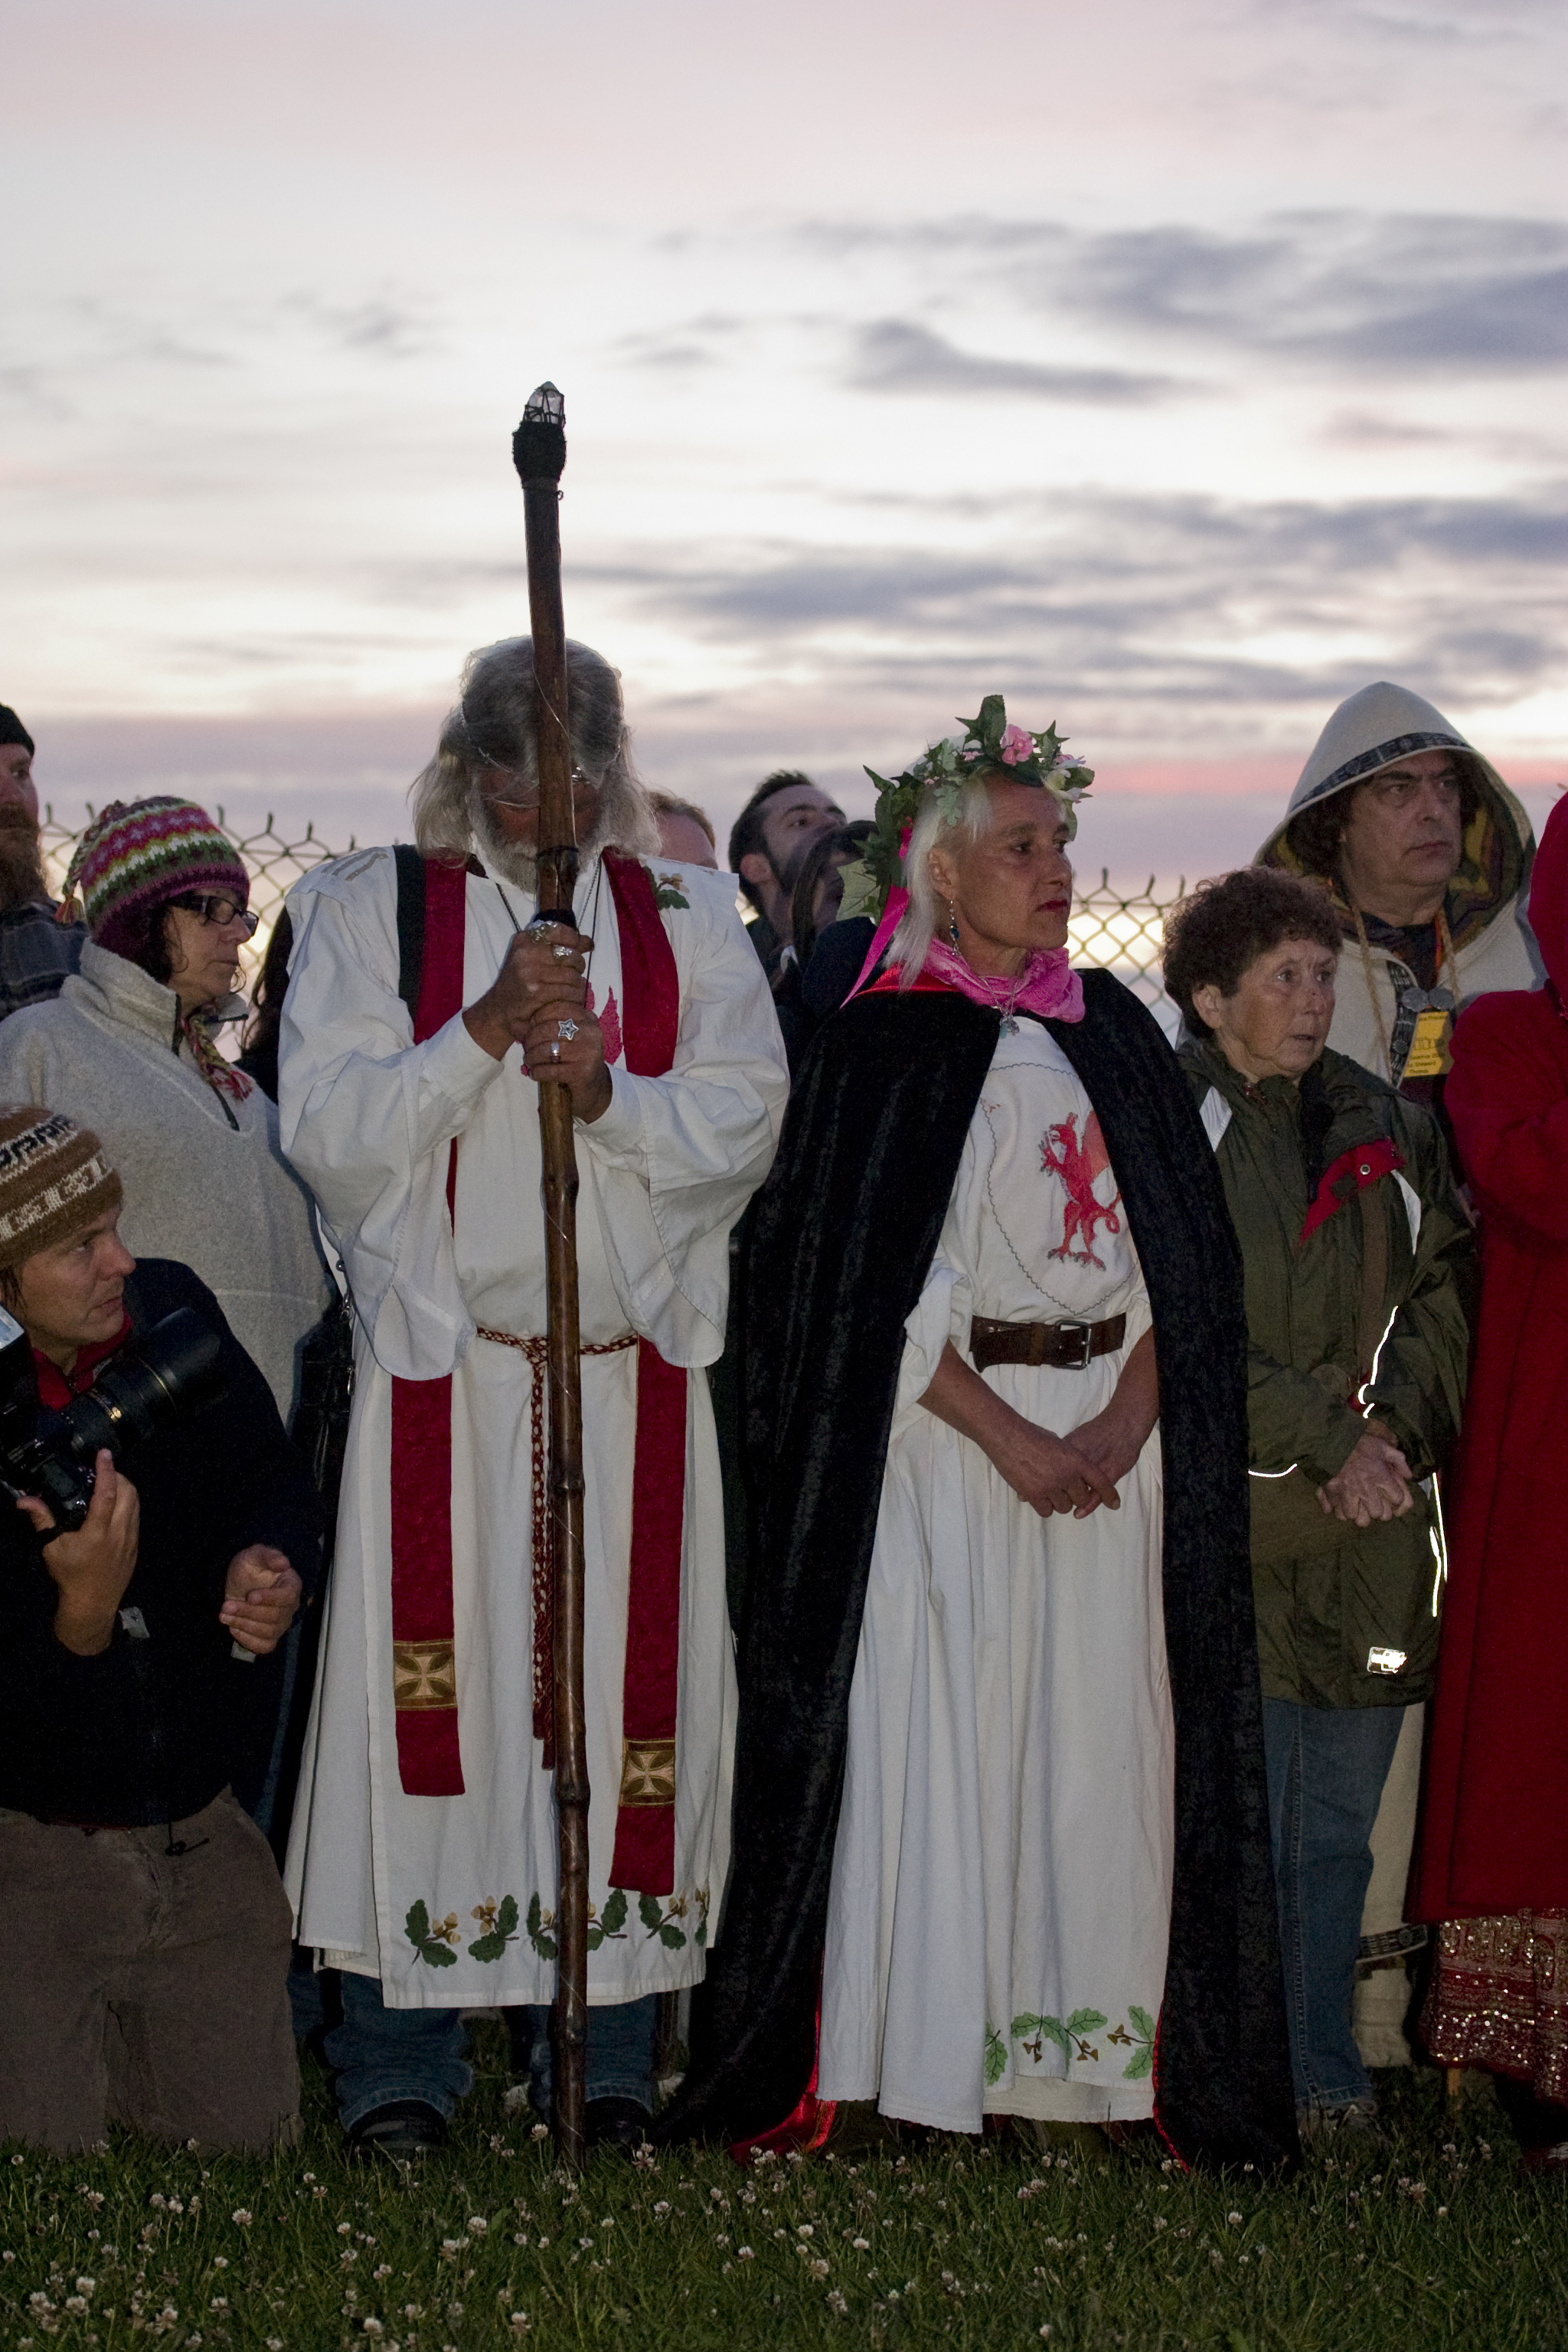 Arthur Uther Pendragon celebrating solstice at Stonehenge